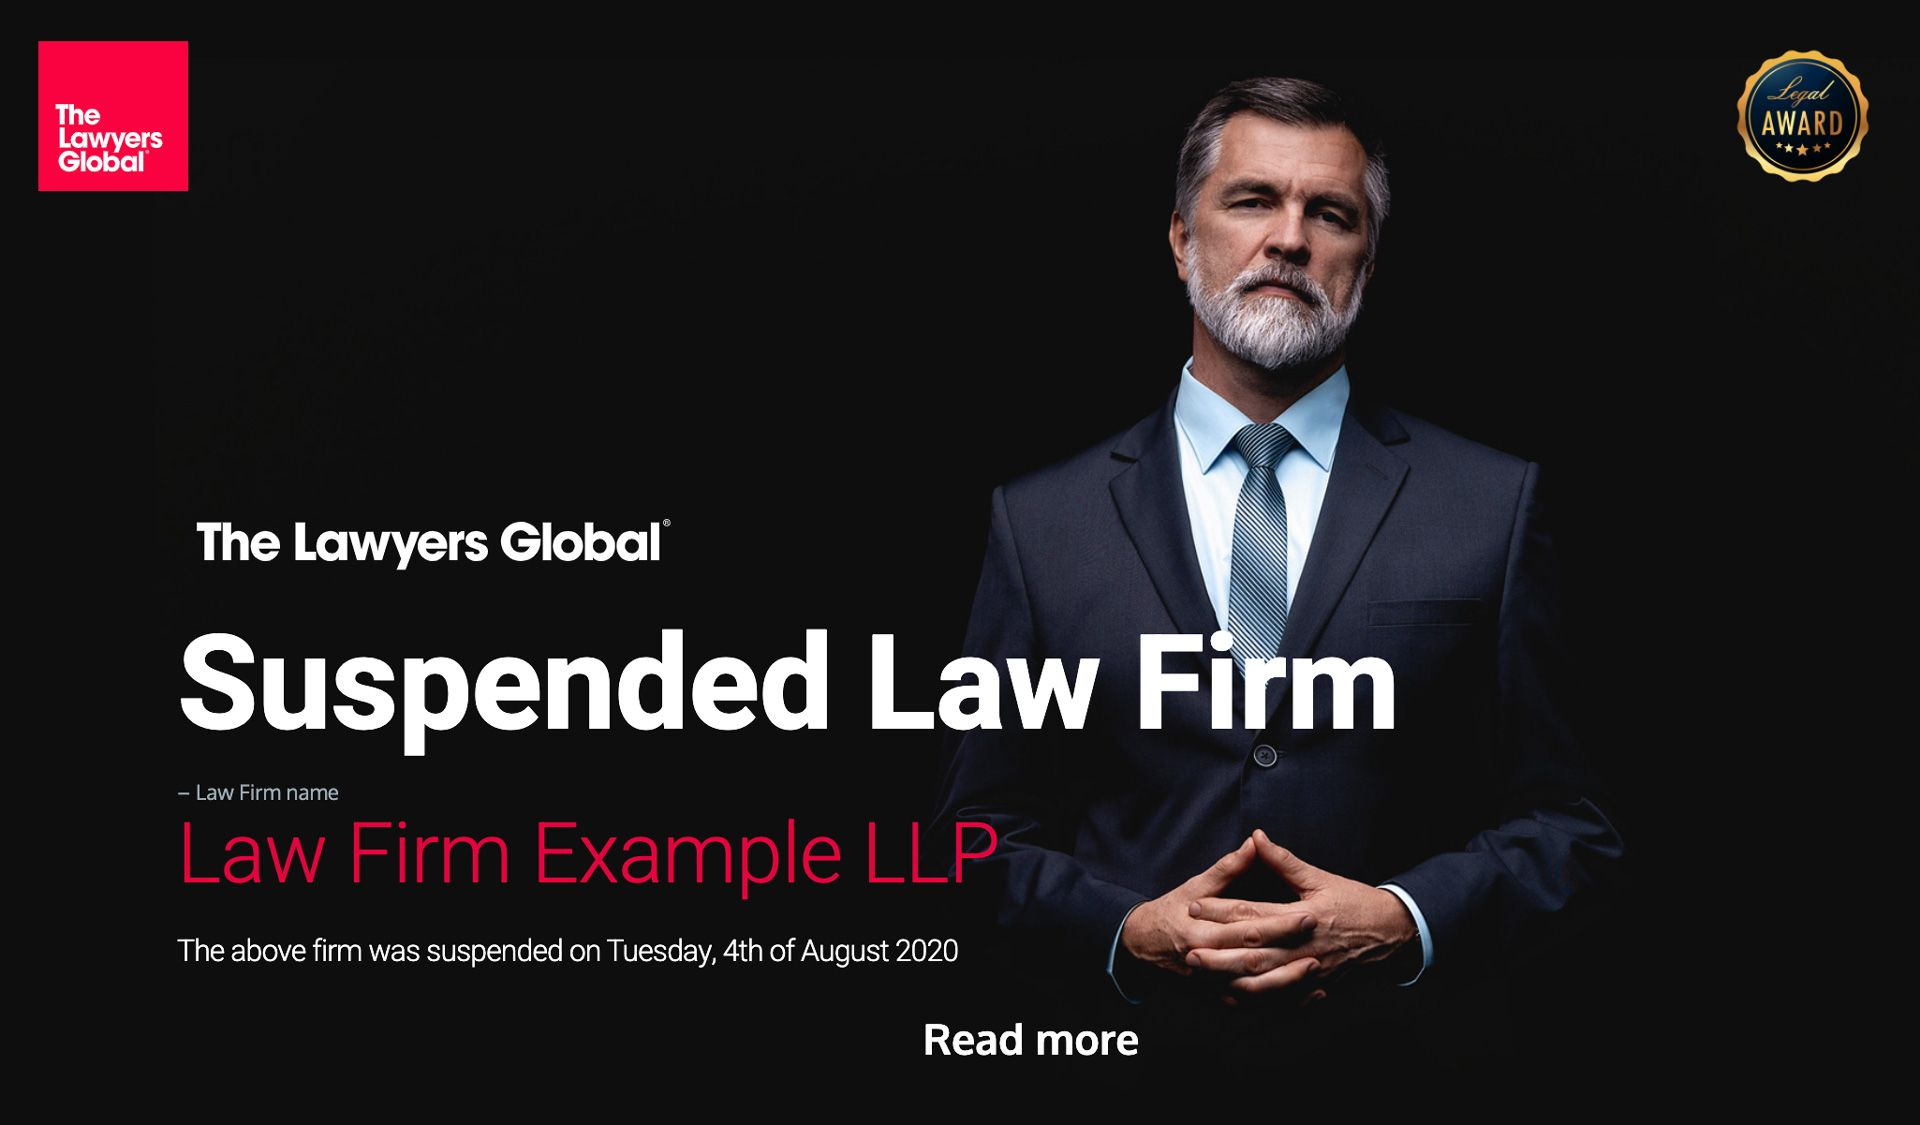 2020 Annual Legal Awards. View All the Winner Law Firms here